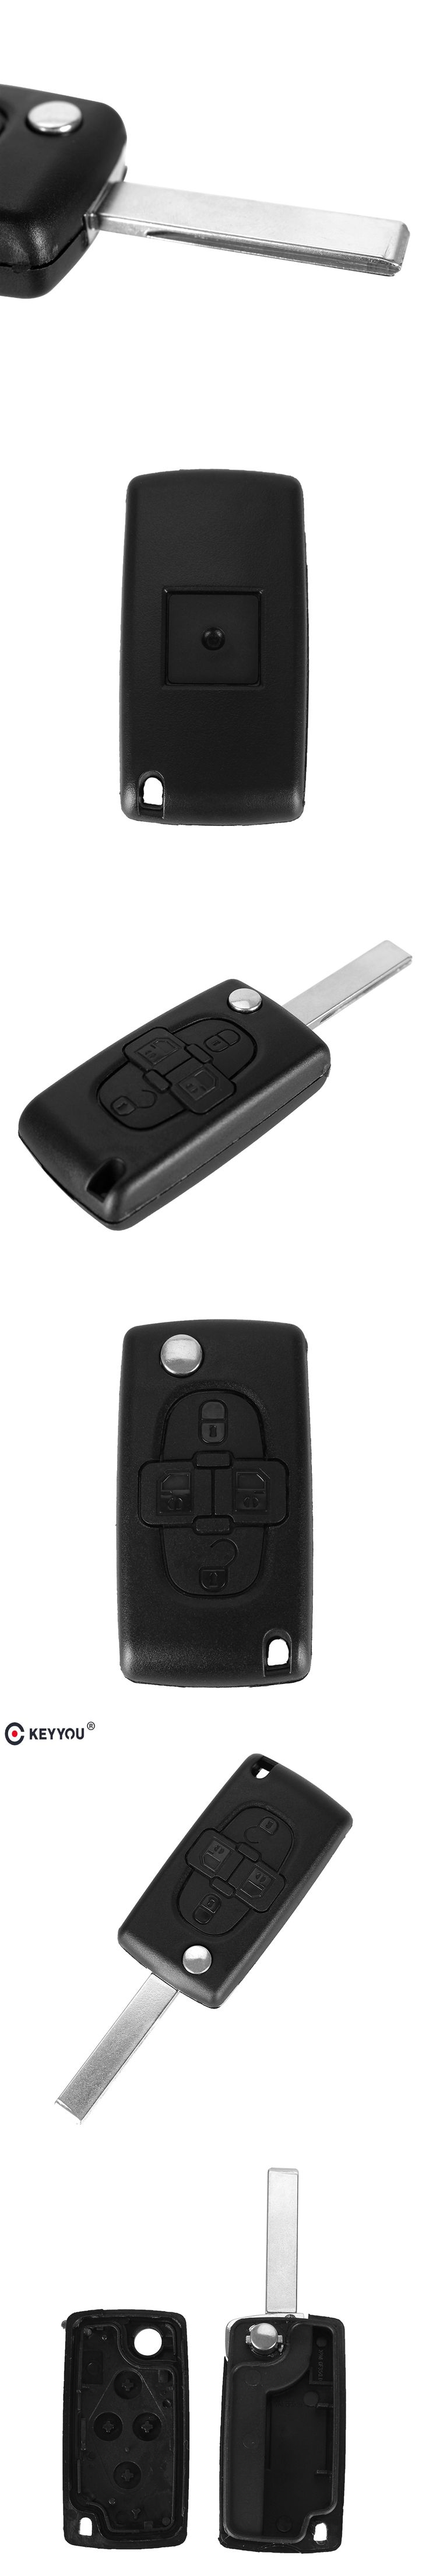 KEYYOU 4 Buttons Flip Floding Remote Key Fob Case Shell Fob For Peugeot 1007 For Citroen C8 Uncut Blade With Groove CE0523